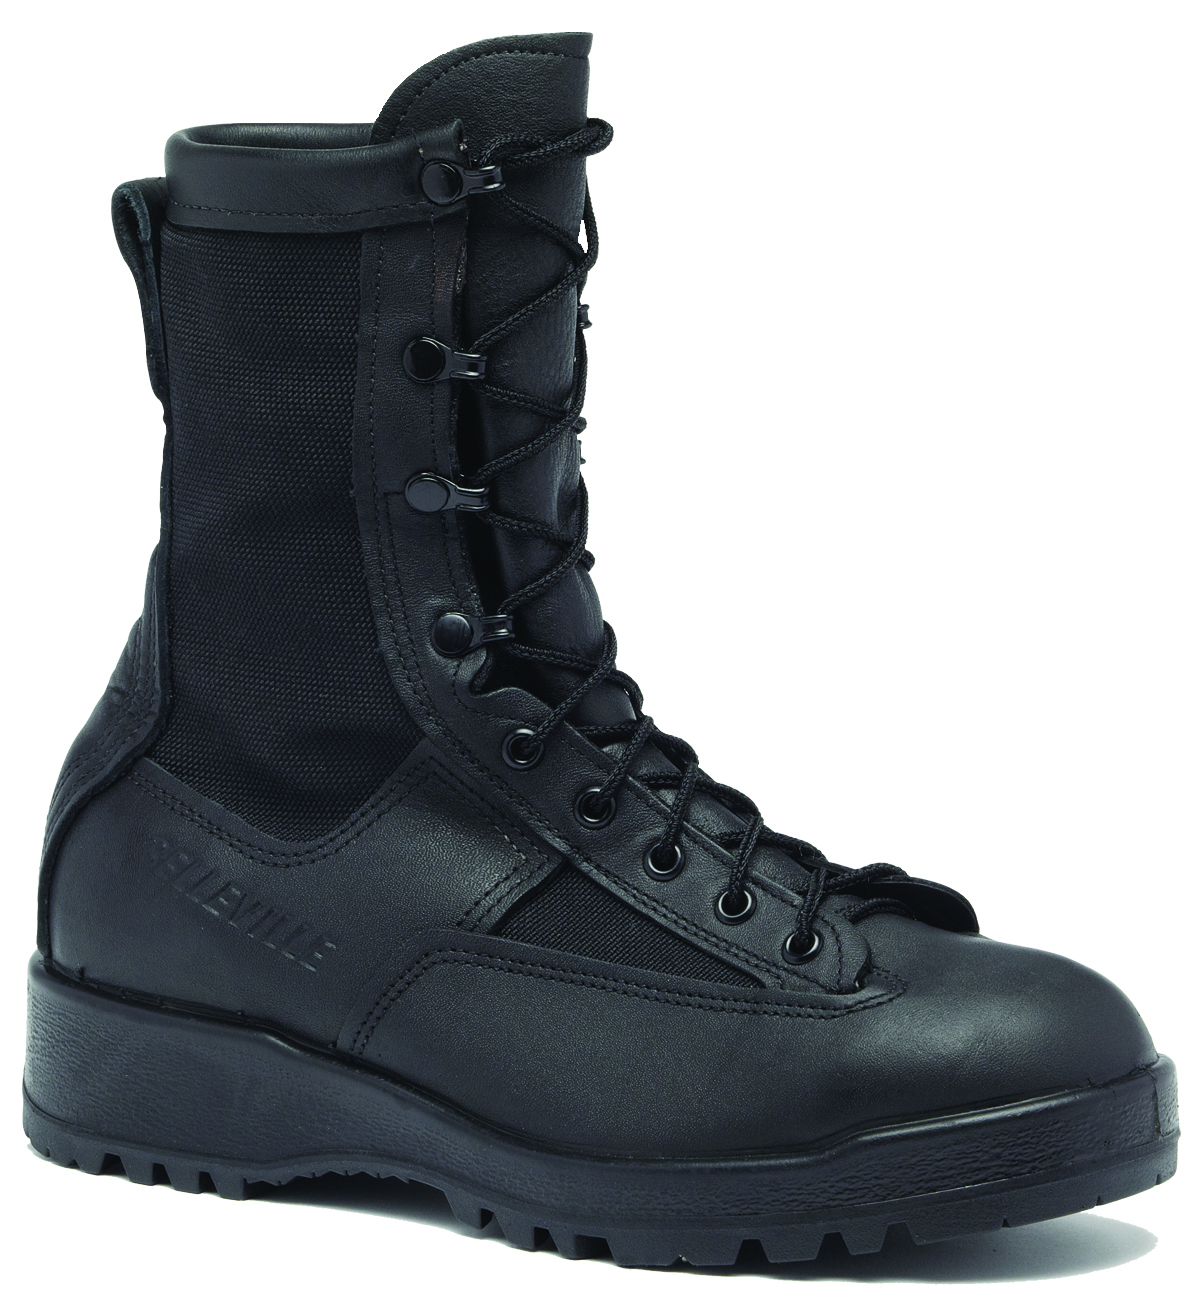 700 Cold Weather Waterproof Duty Boot